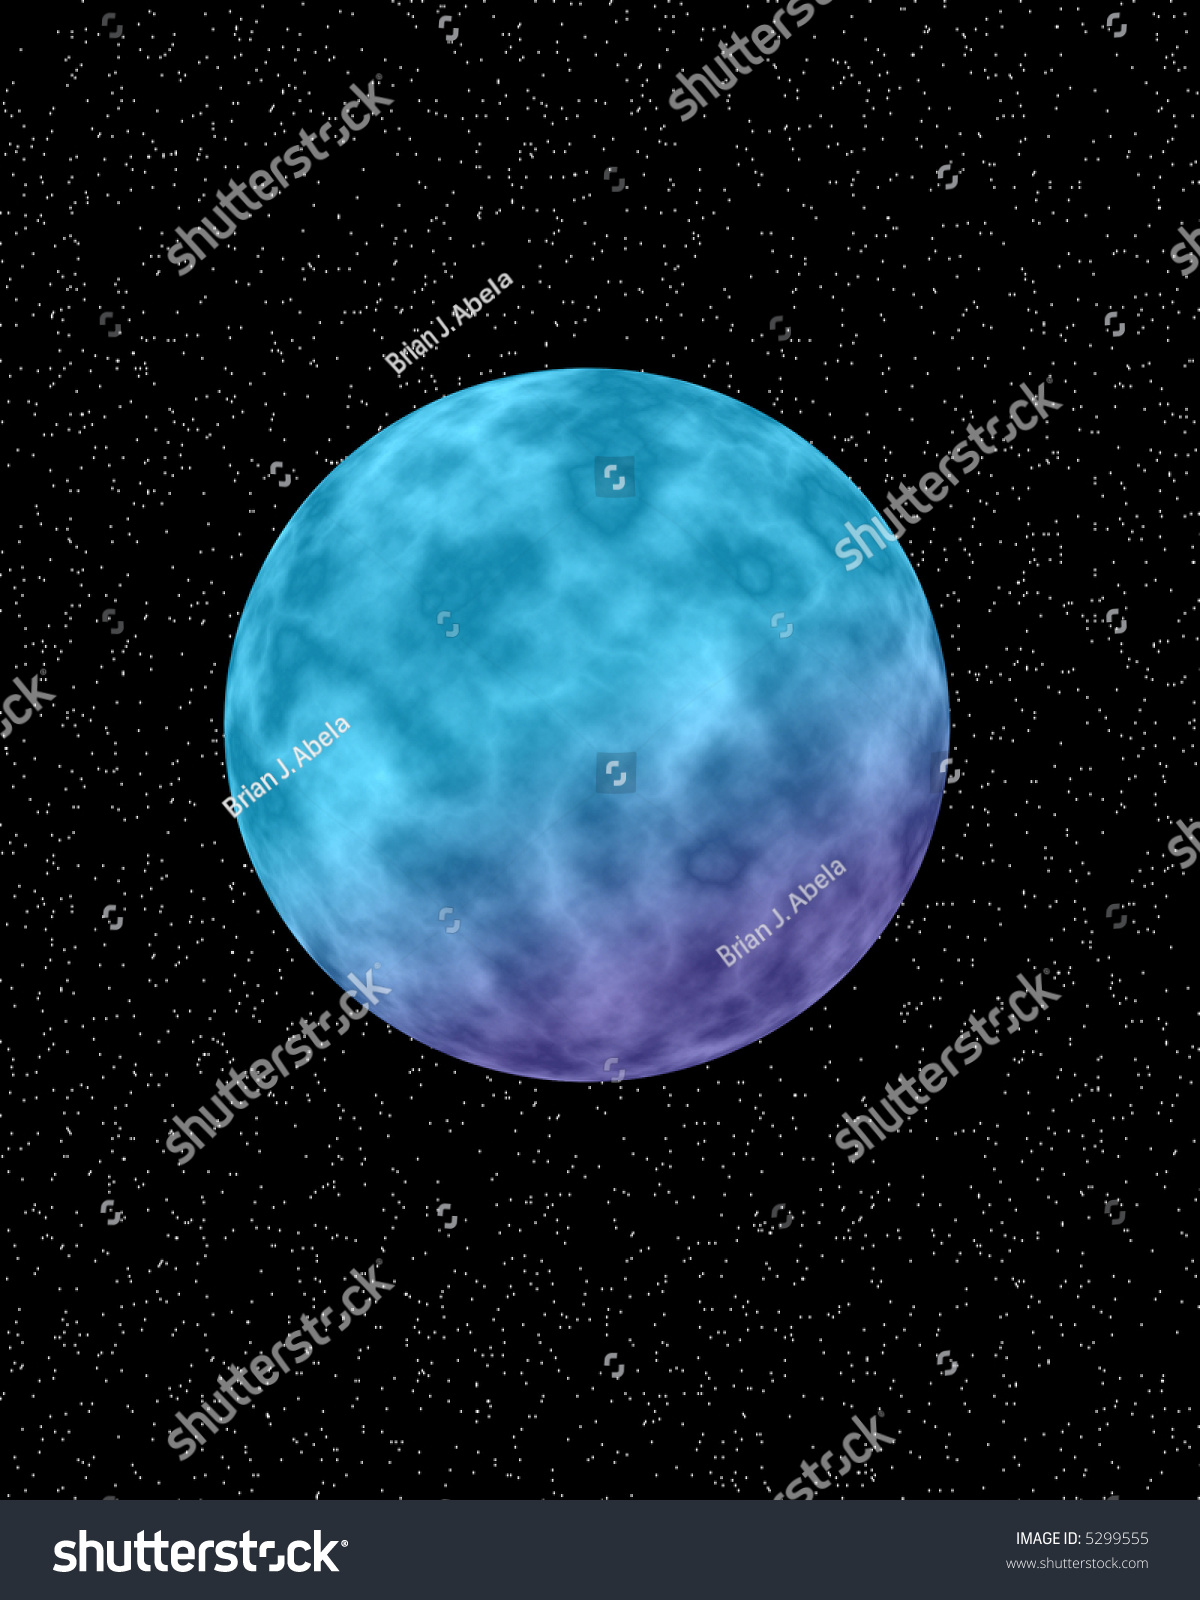 purple and blue planets - photo #21